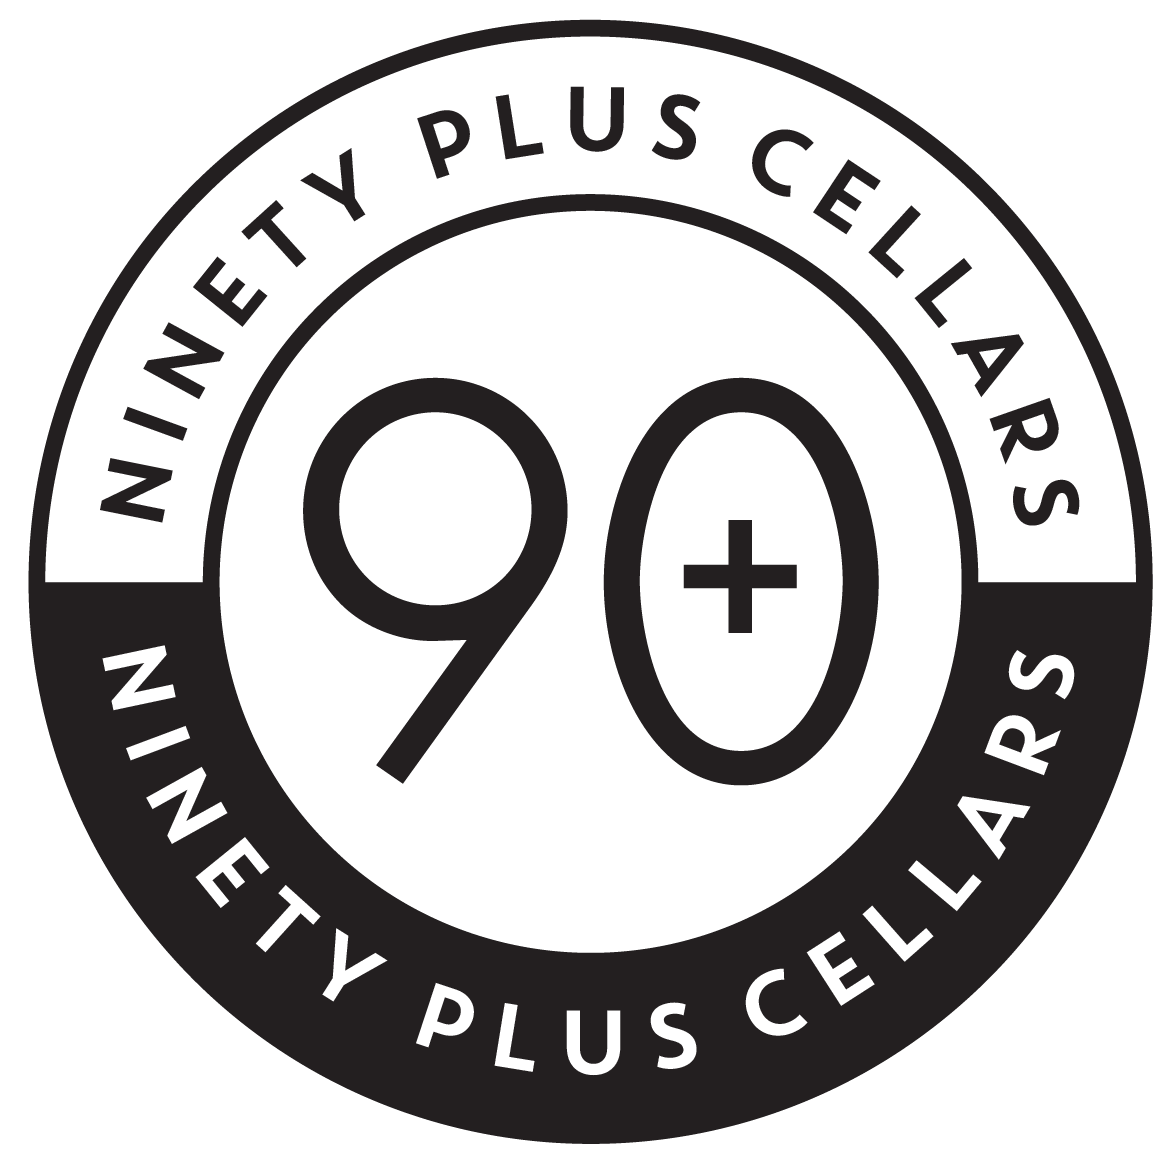 new90logo.png